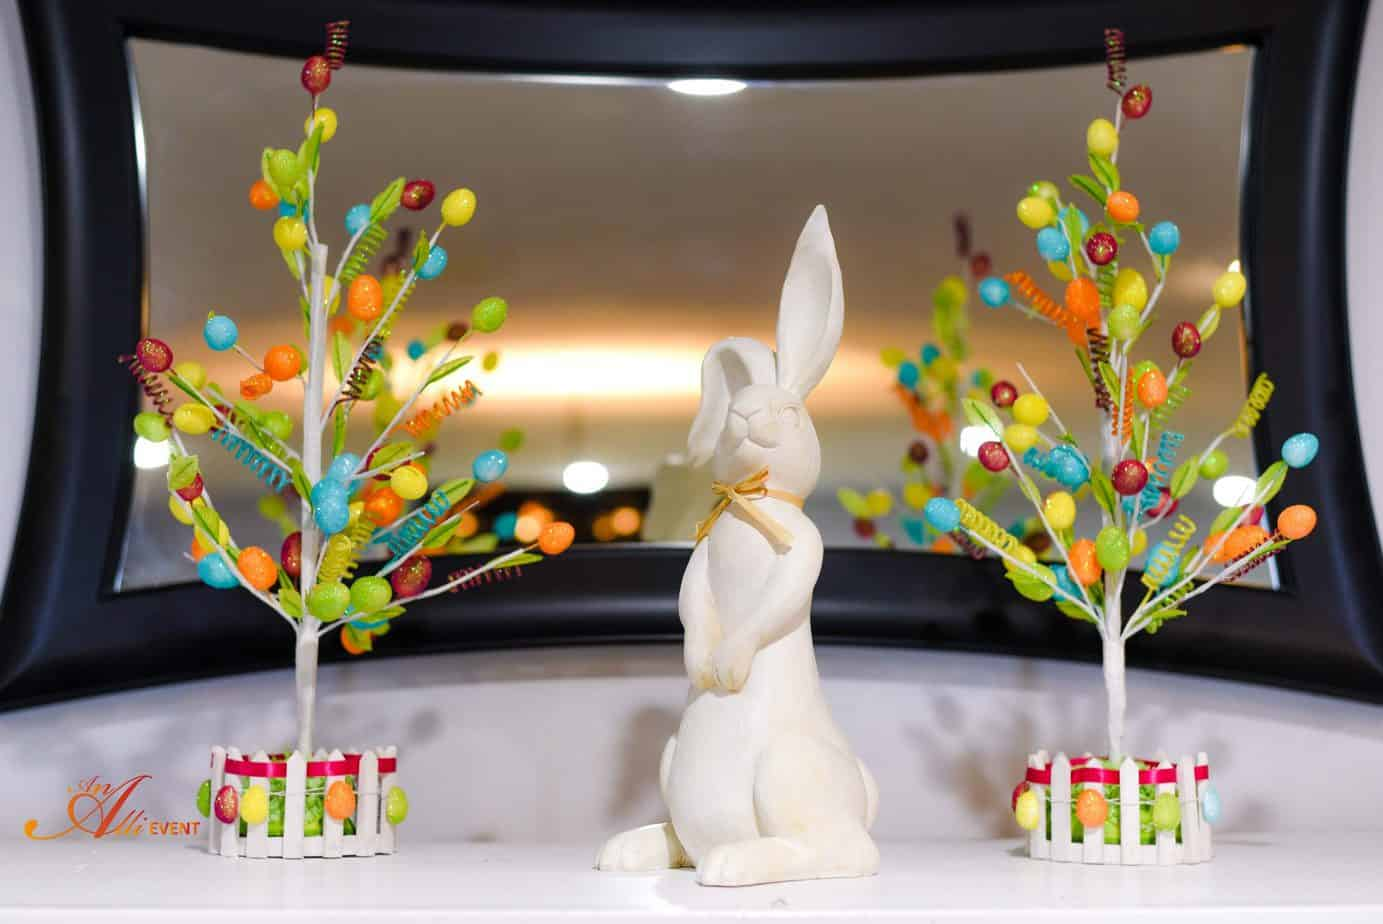 Whimsical Easter Mantel Easy and Inexpensive An Alli Event